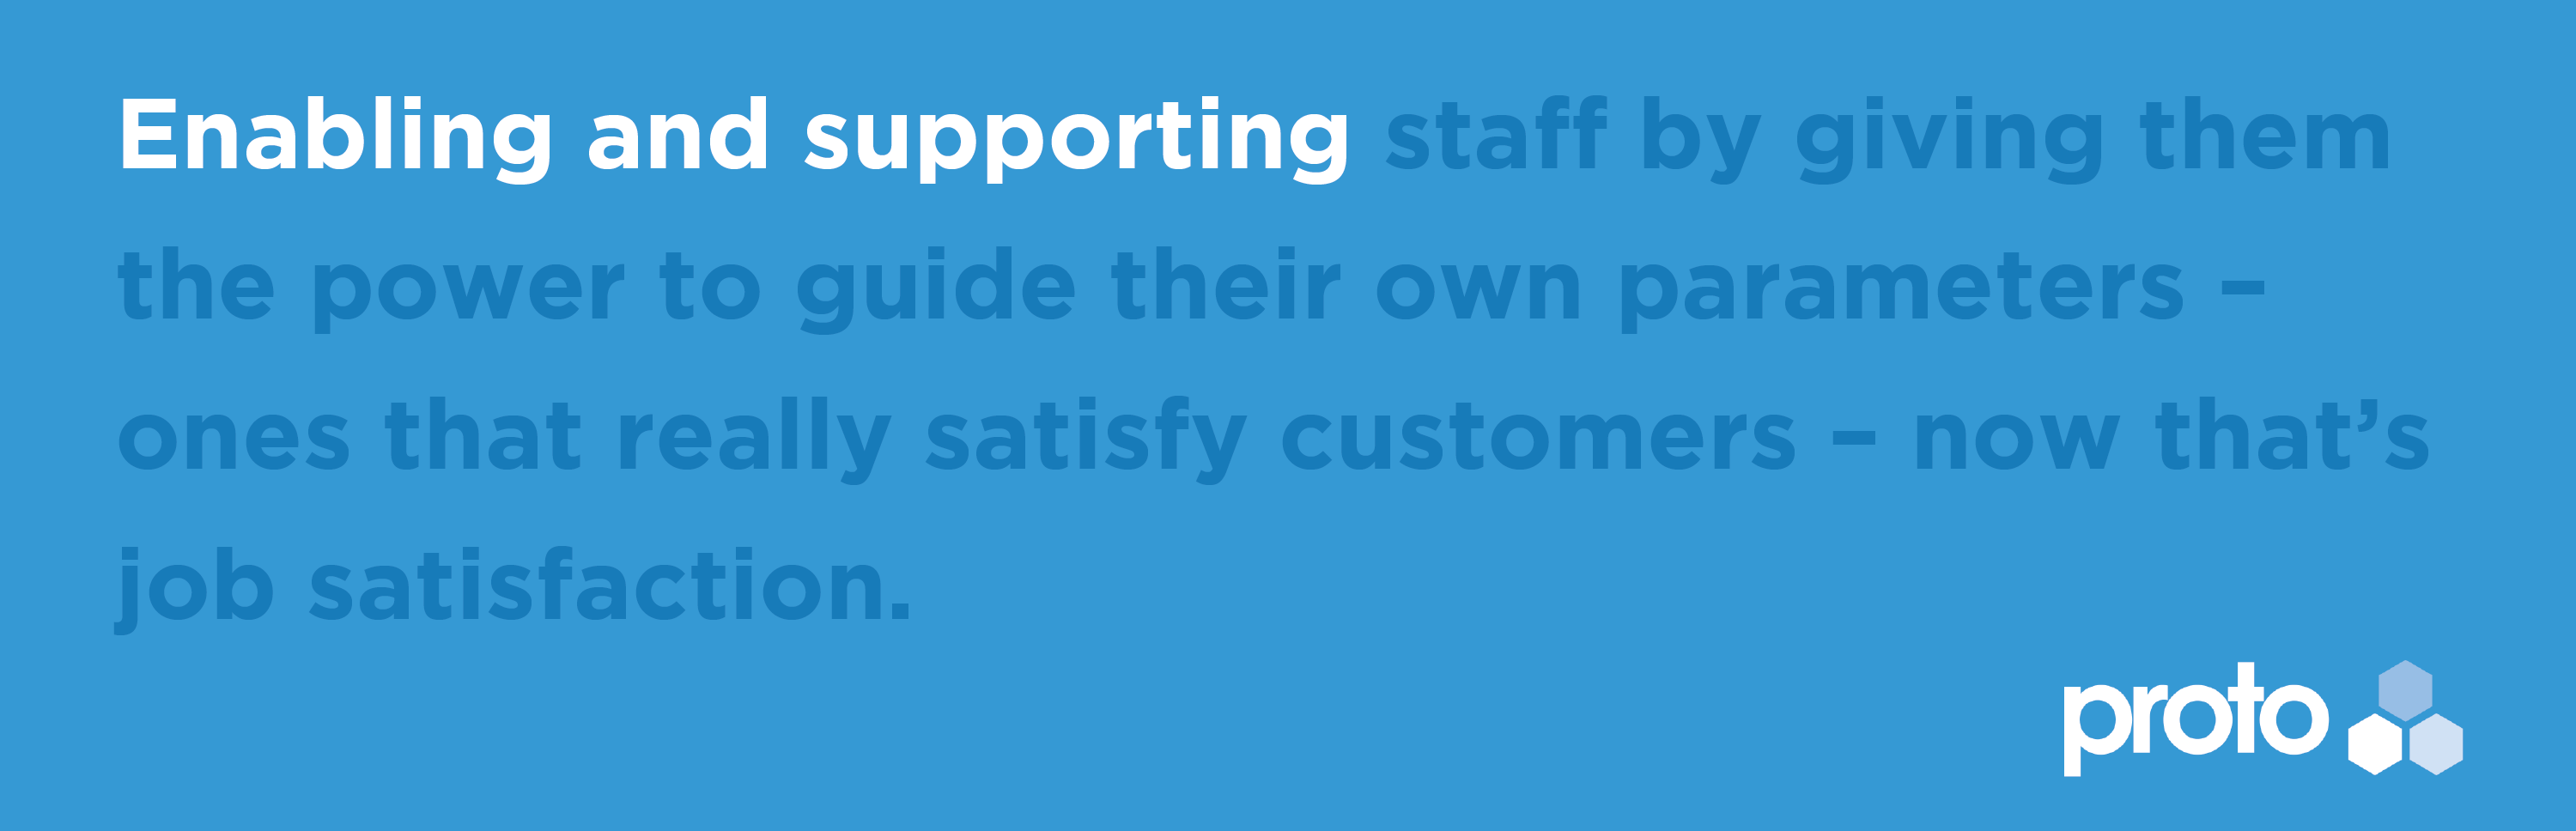 Enabling and supporting staff by giving them the power to guide their own parameters - ones that really satisfy customers - now that's job satisfaction.